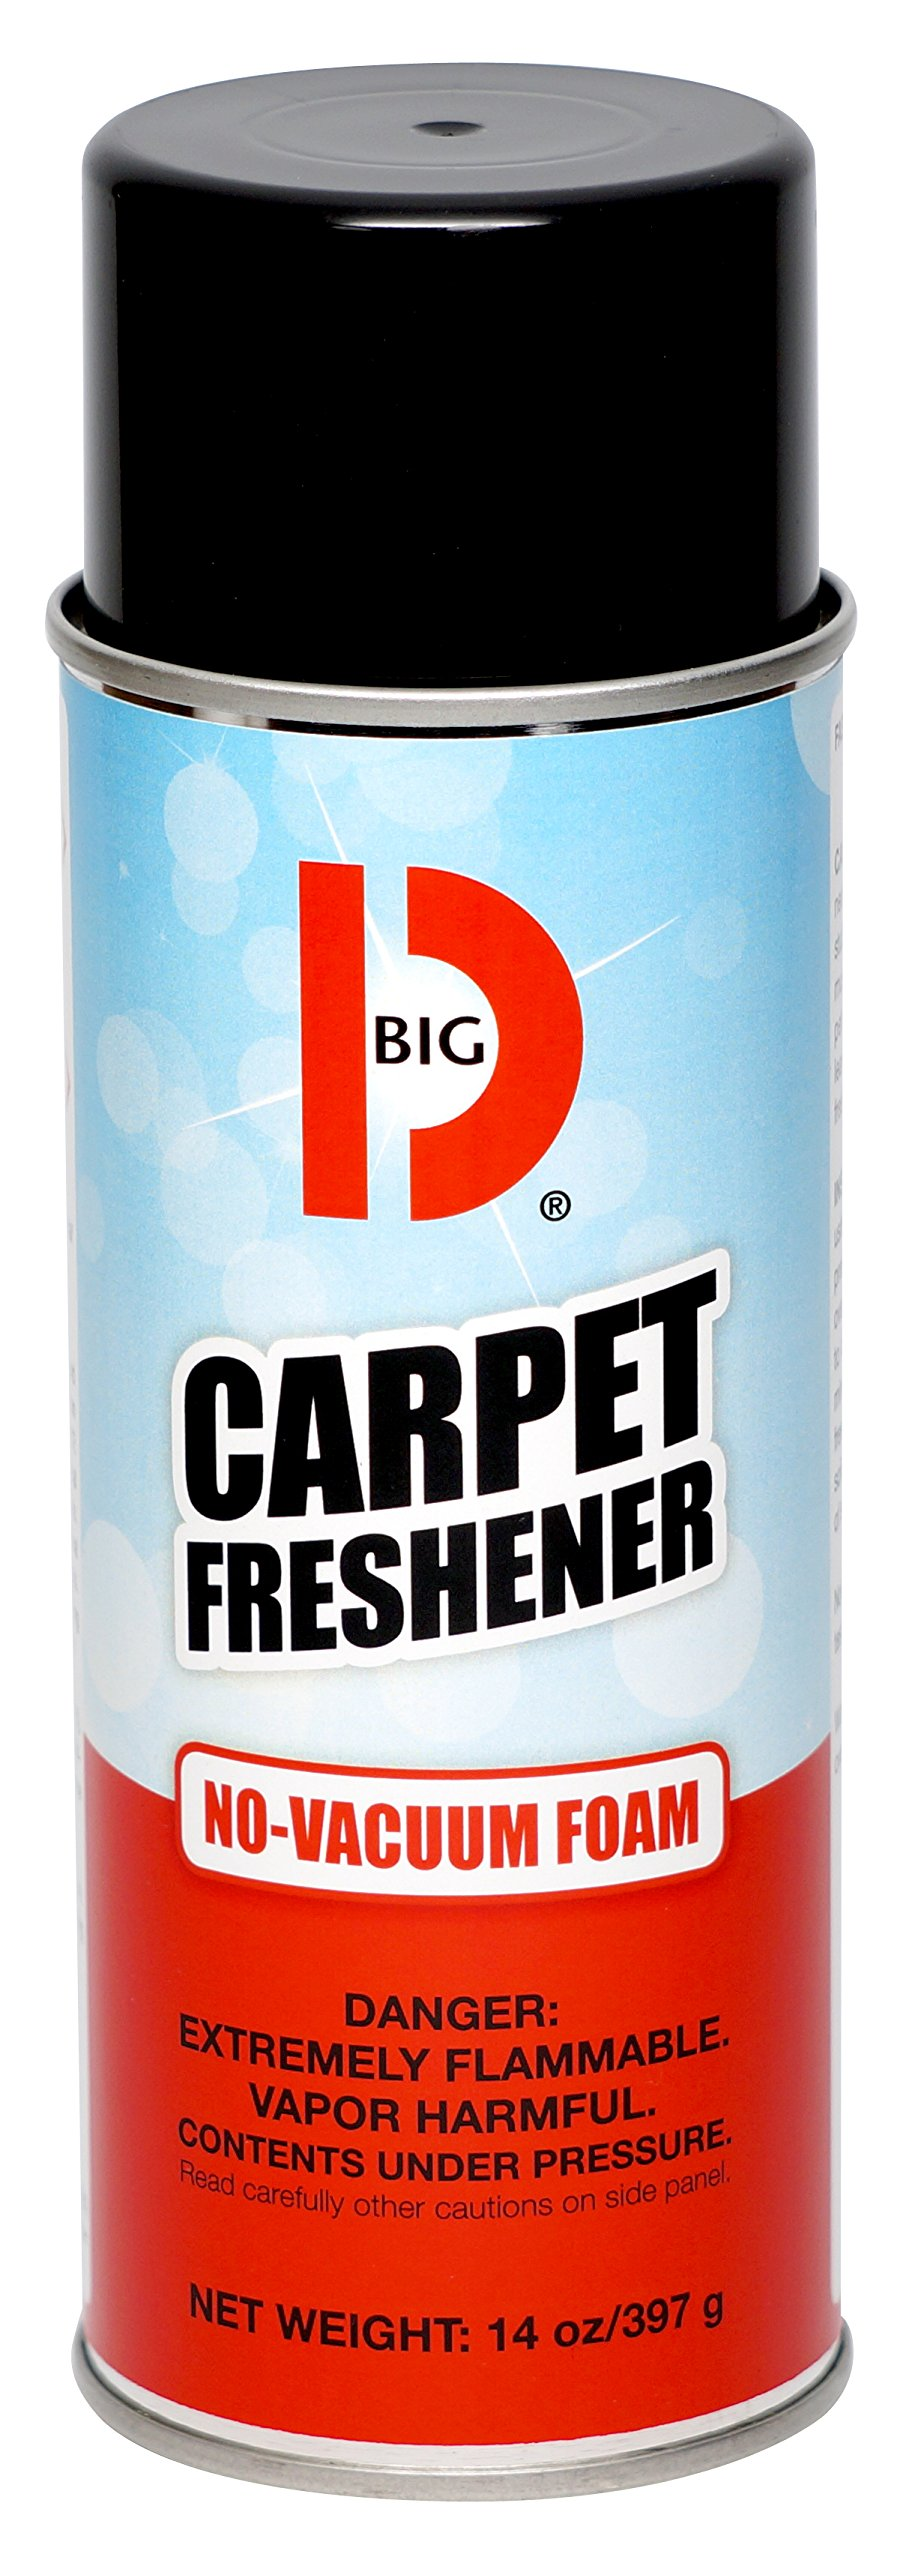 Big D 241 Carpet Freshener No-Vacuum Foam, 14 oz (Pack of 12) - Foam magically disappears - Eliminates odors trapped in carpet fibers - Use for pet odors, tobacco, food, stale, musty odors